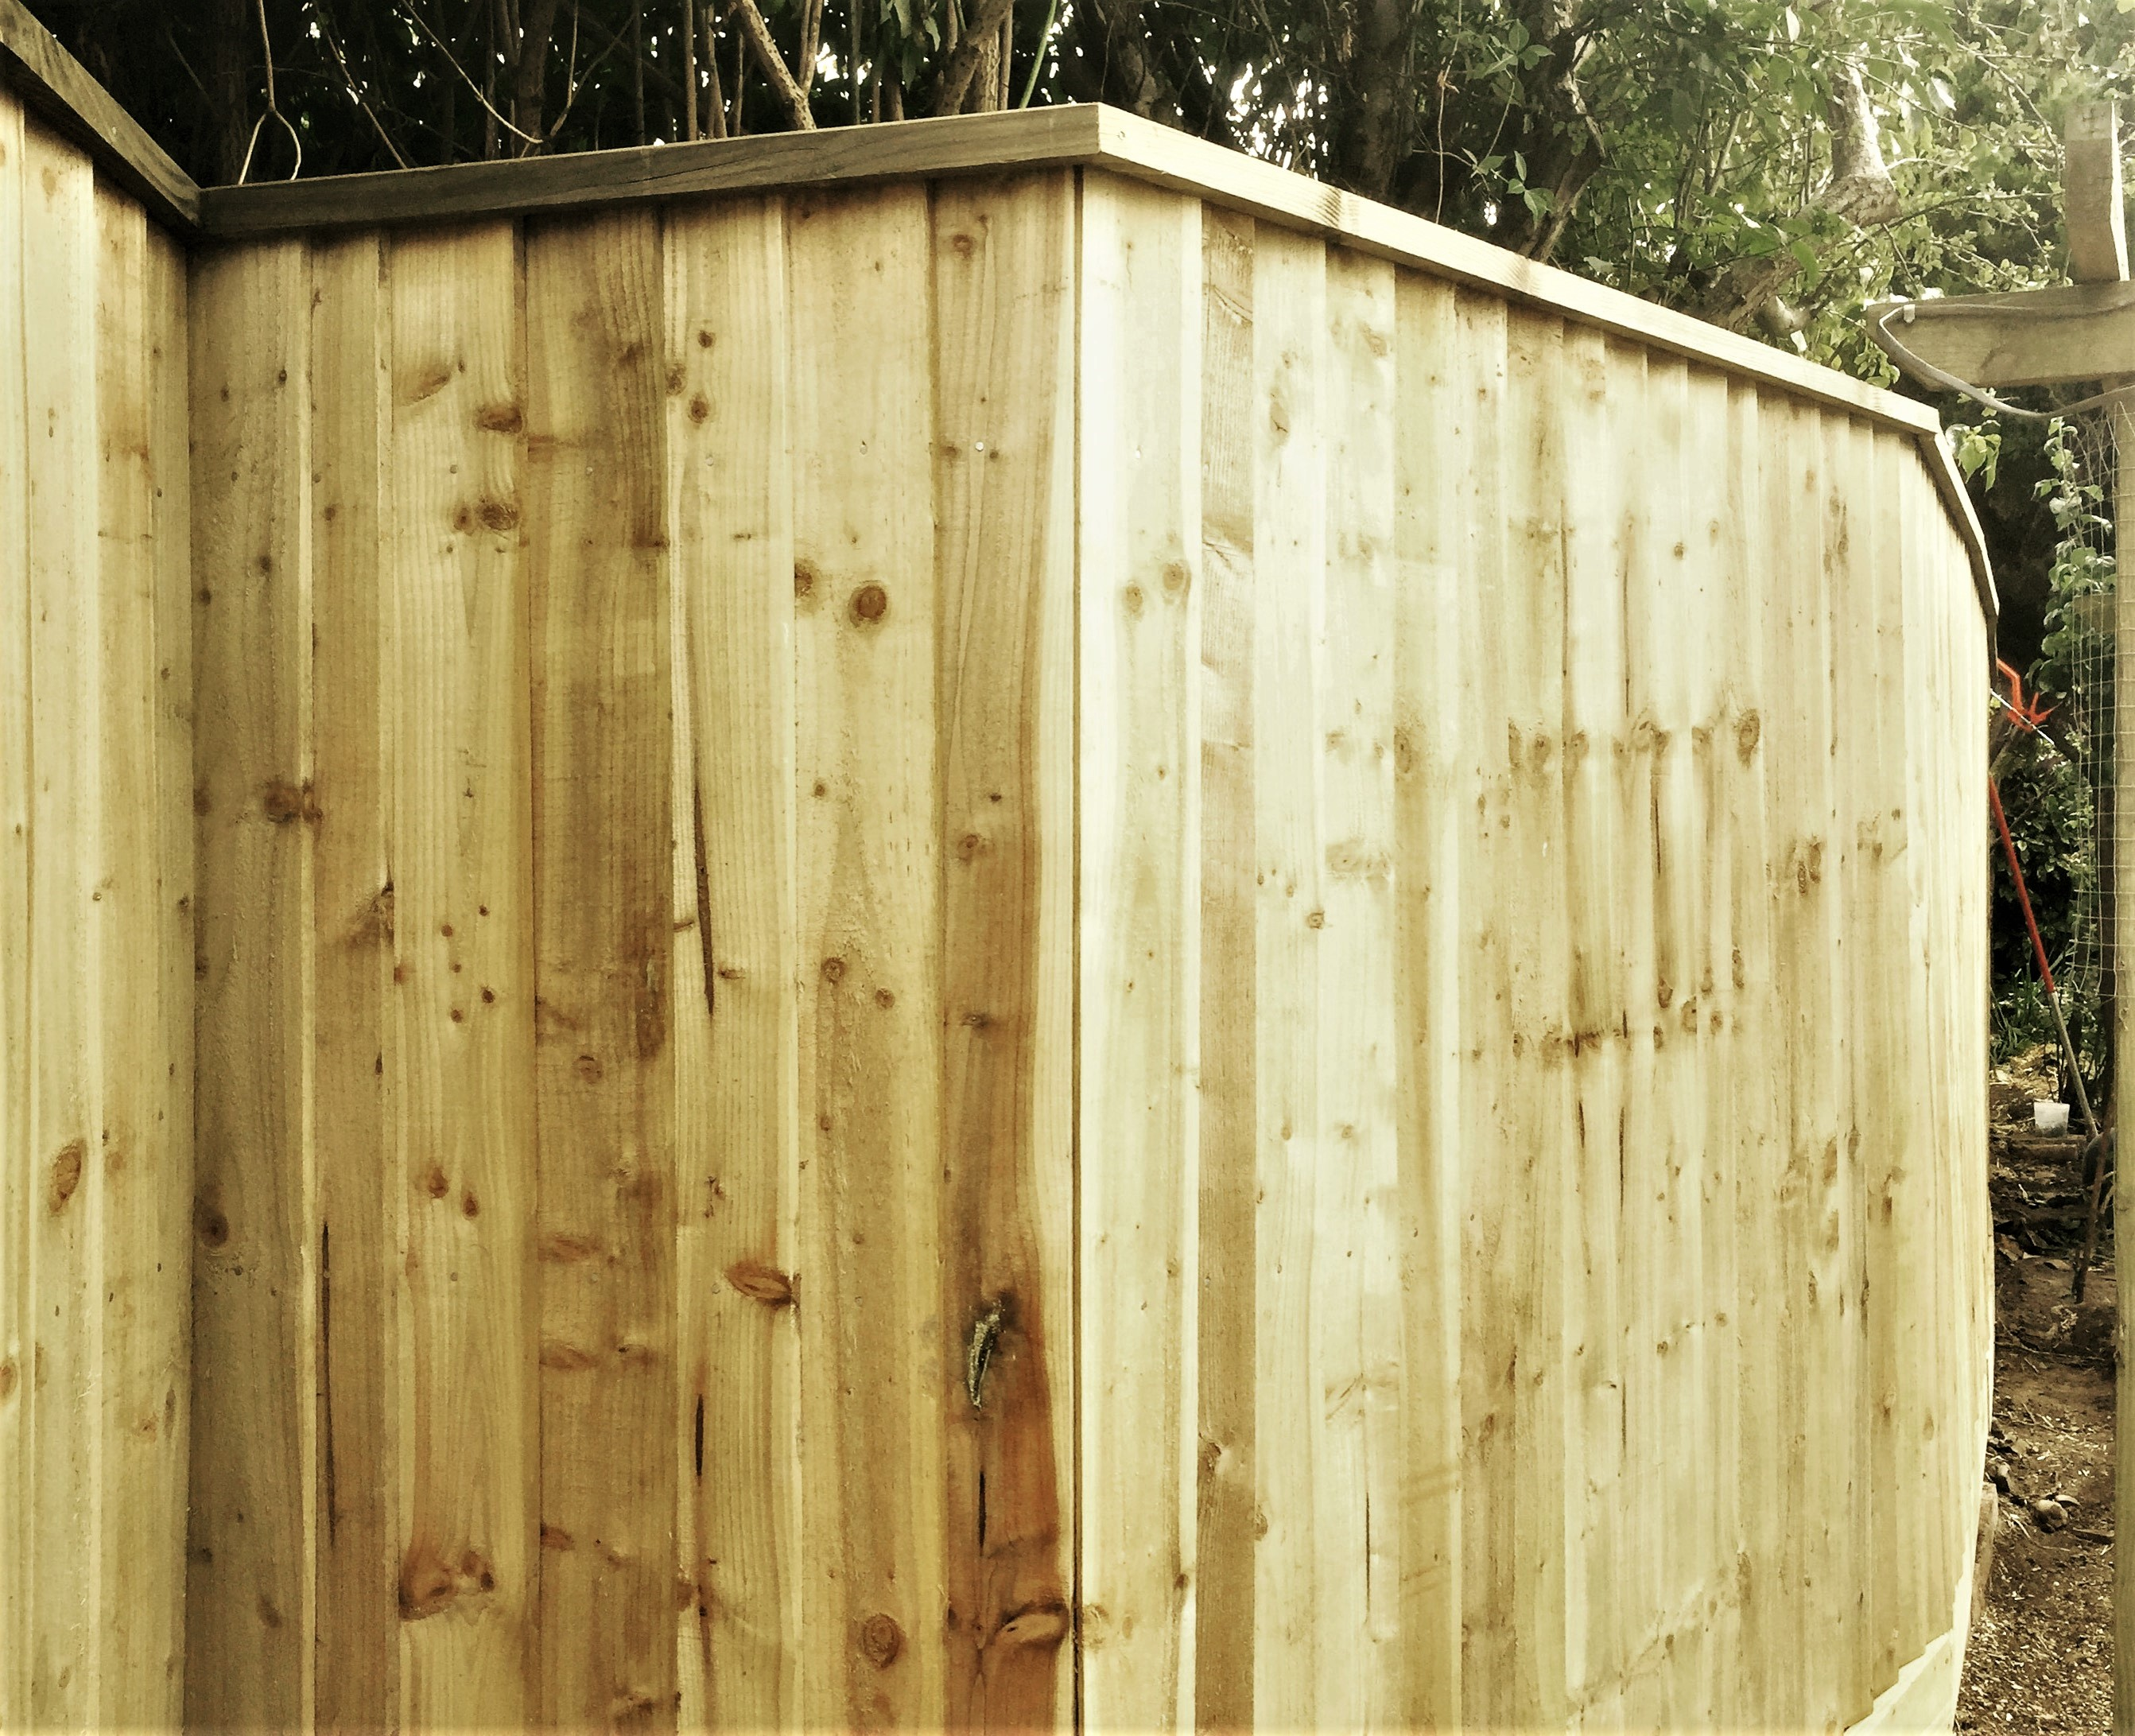 Featheredge fence with unusual angles